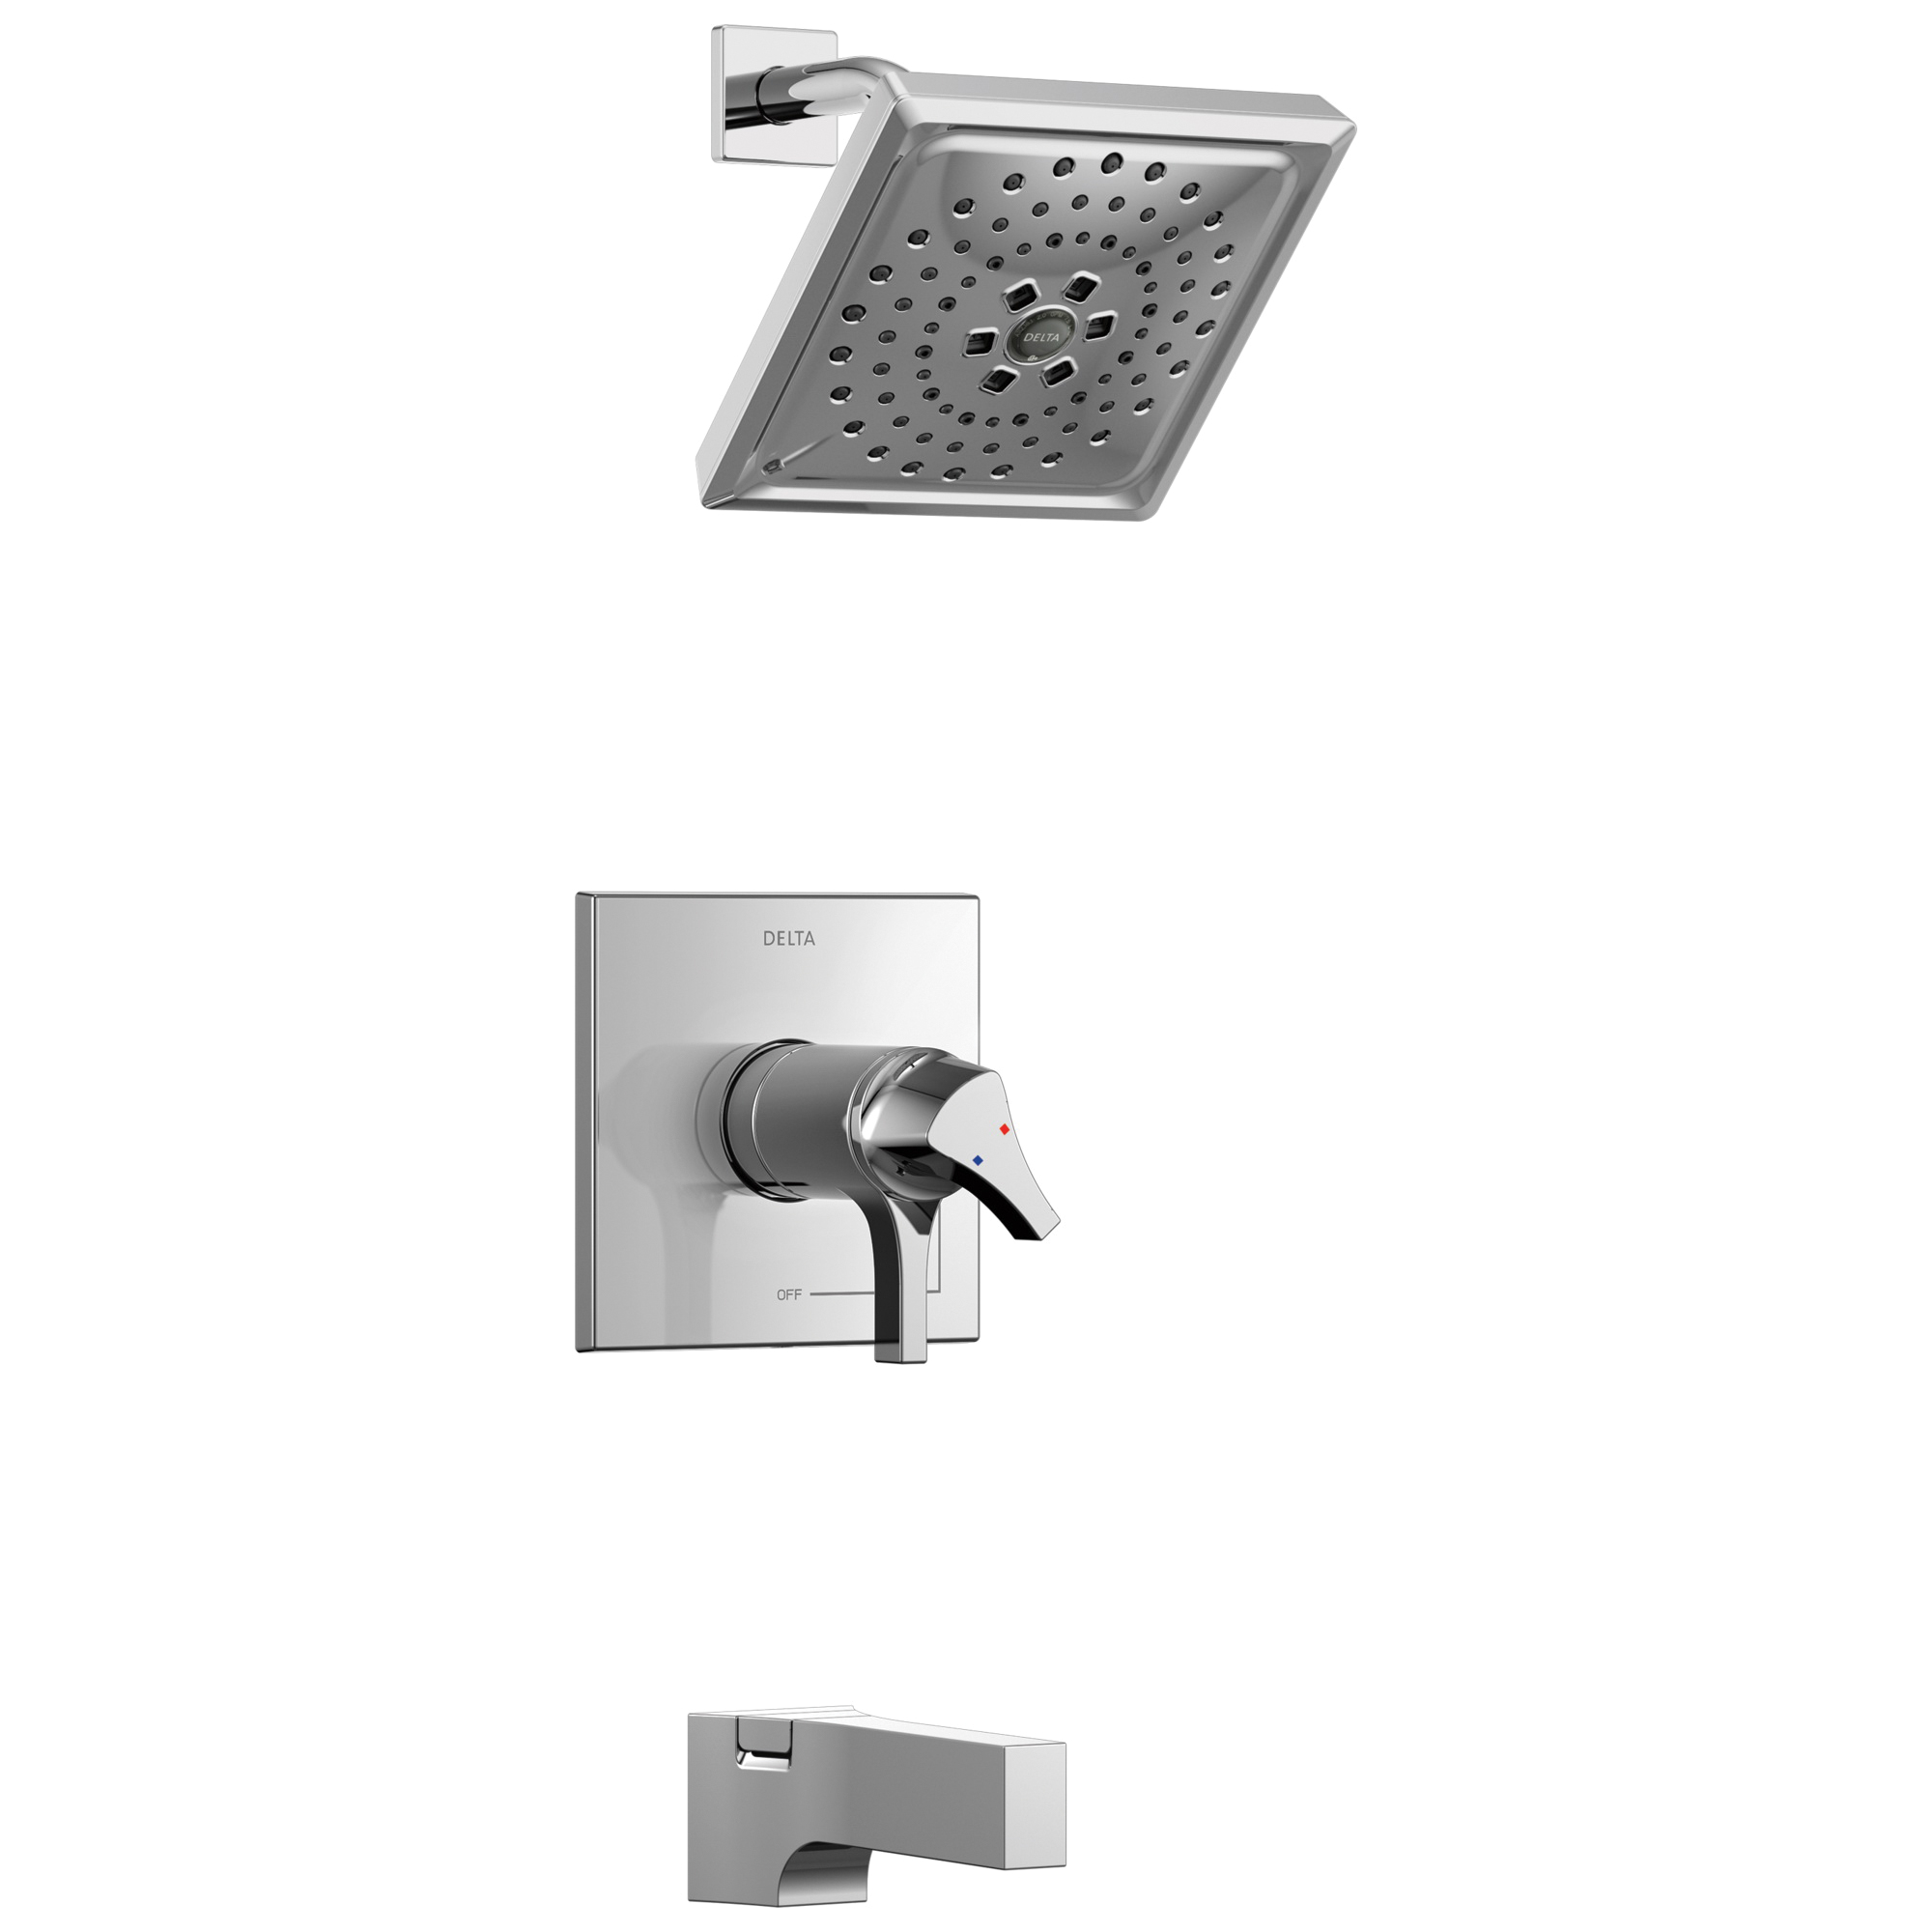 DELTA® T17T474 TempAssure® 17T Tub and Shower Faucet Trim, 1.75 gpm Shower, Hand Shower Yes/No: No, Chrome Plated